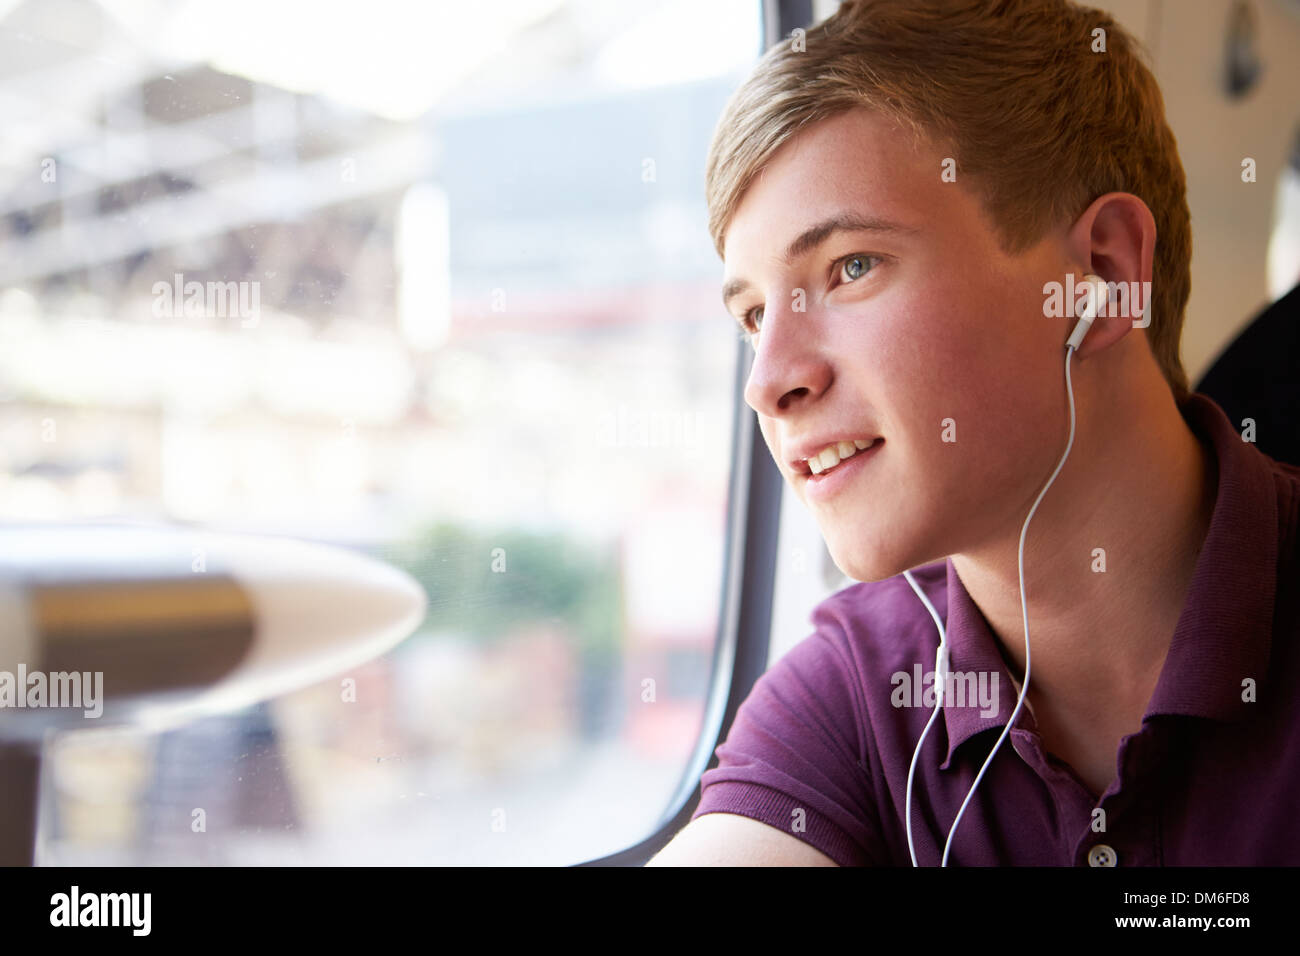 Young Man Listening To Music On Train Journey - Stock Image